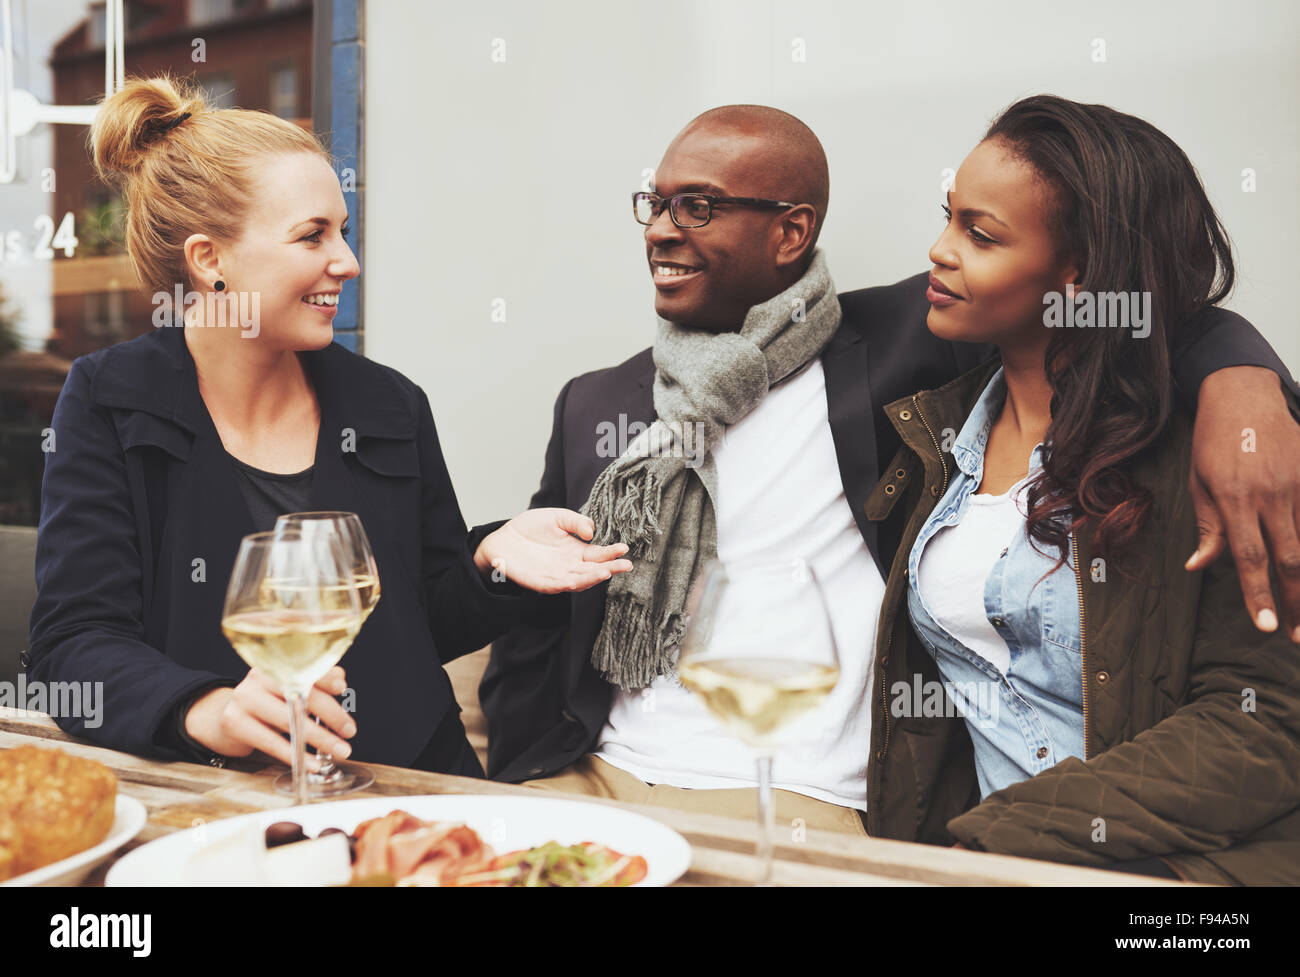 Good friends enjoying dinner outside on a cafe, ethnic friends - Stock Image